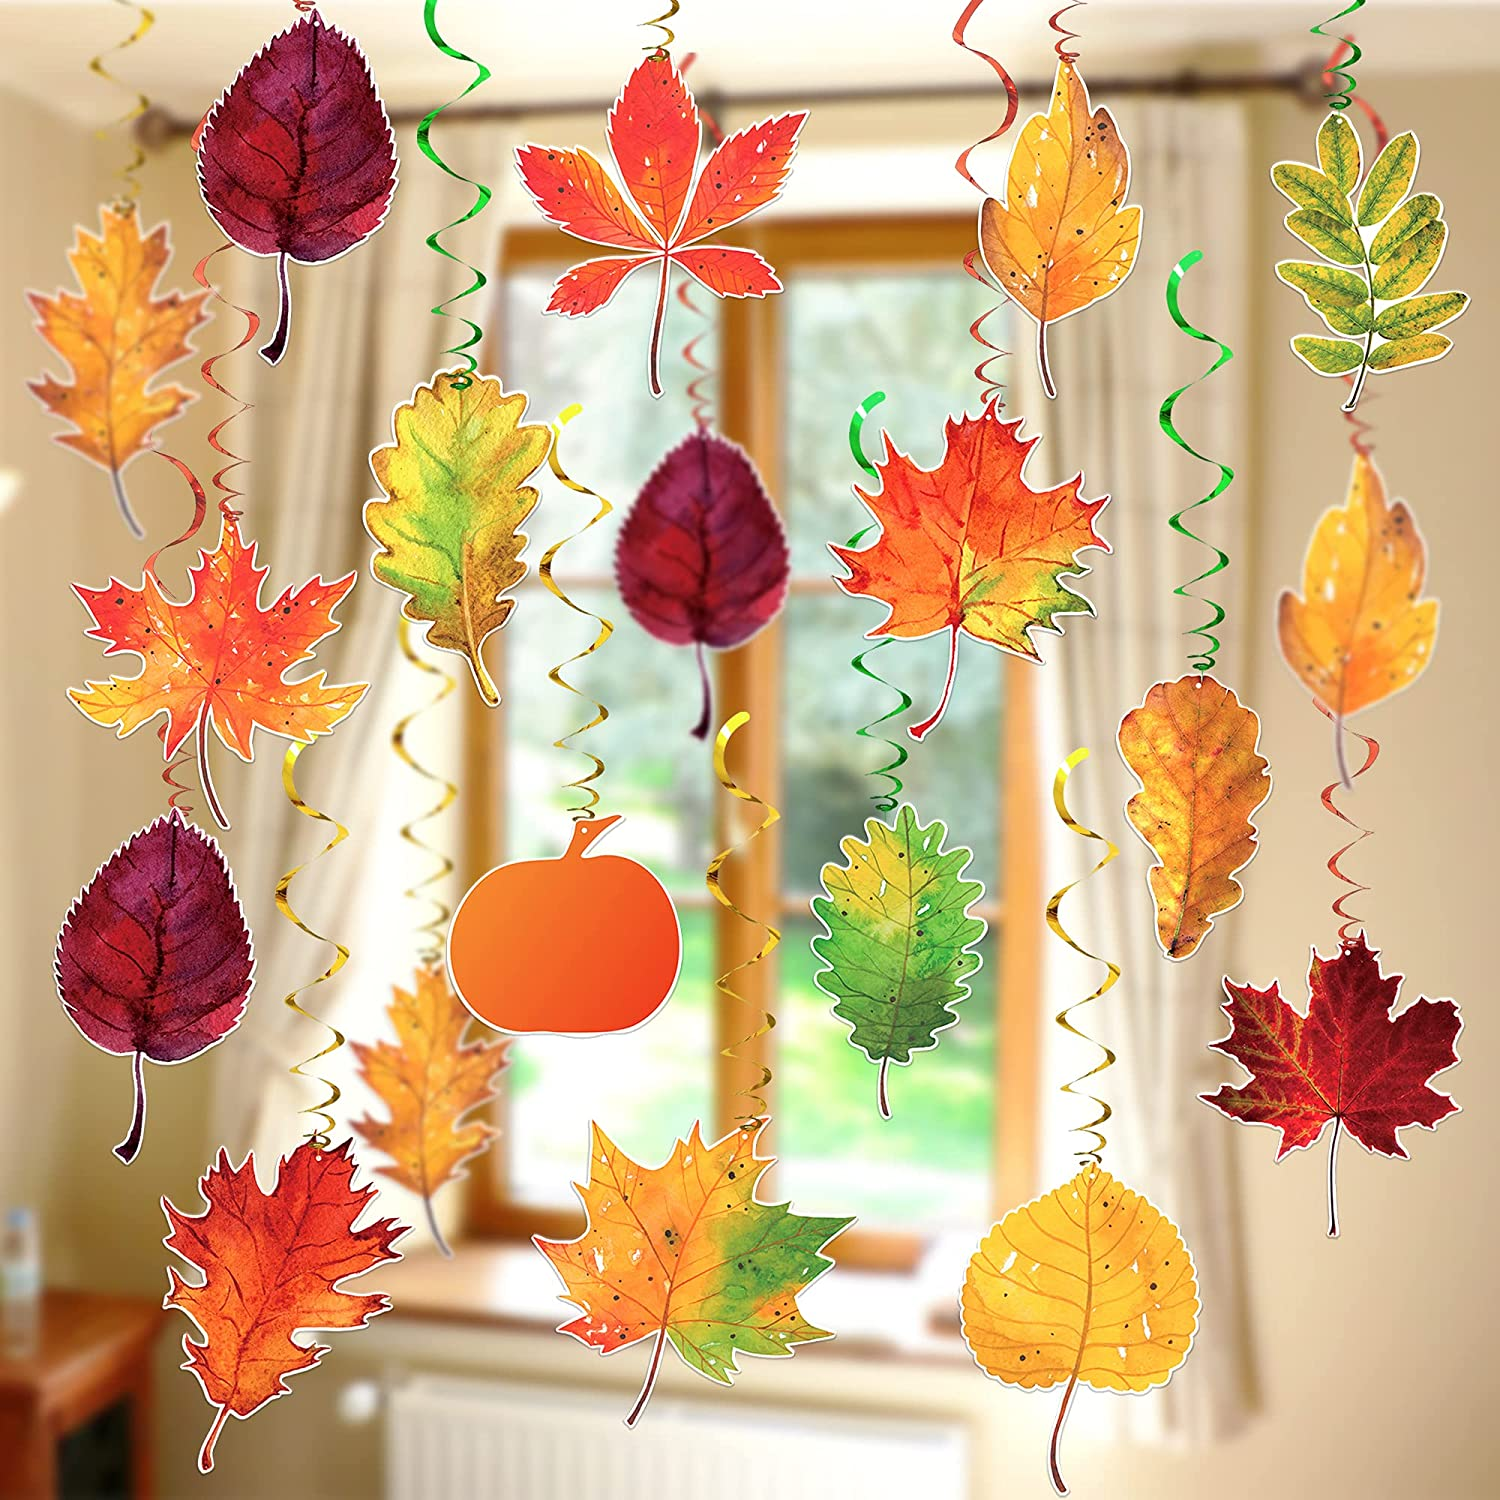 Thanksgiving Swirls for Fall Classroom Decorations - Pack of 30, No DIY Required   Fall Hanging Decorations, Thanksgiving Hanging Swirls, Autumn Hanging Decorations   Thanksgiving Decorations for Home